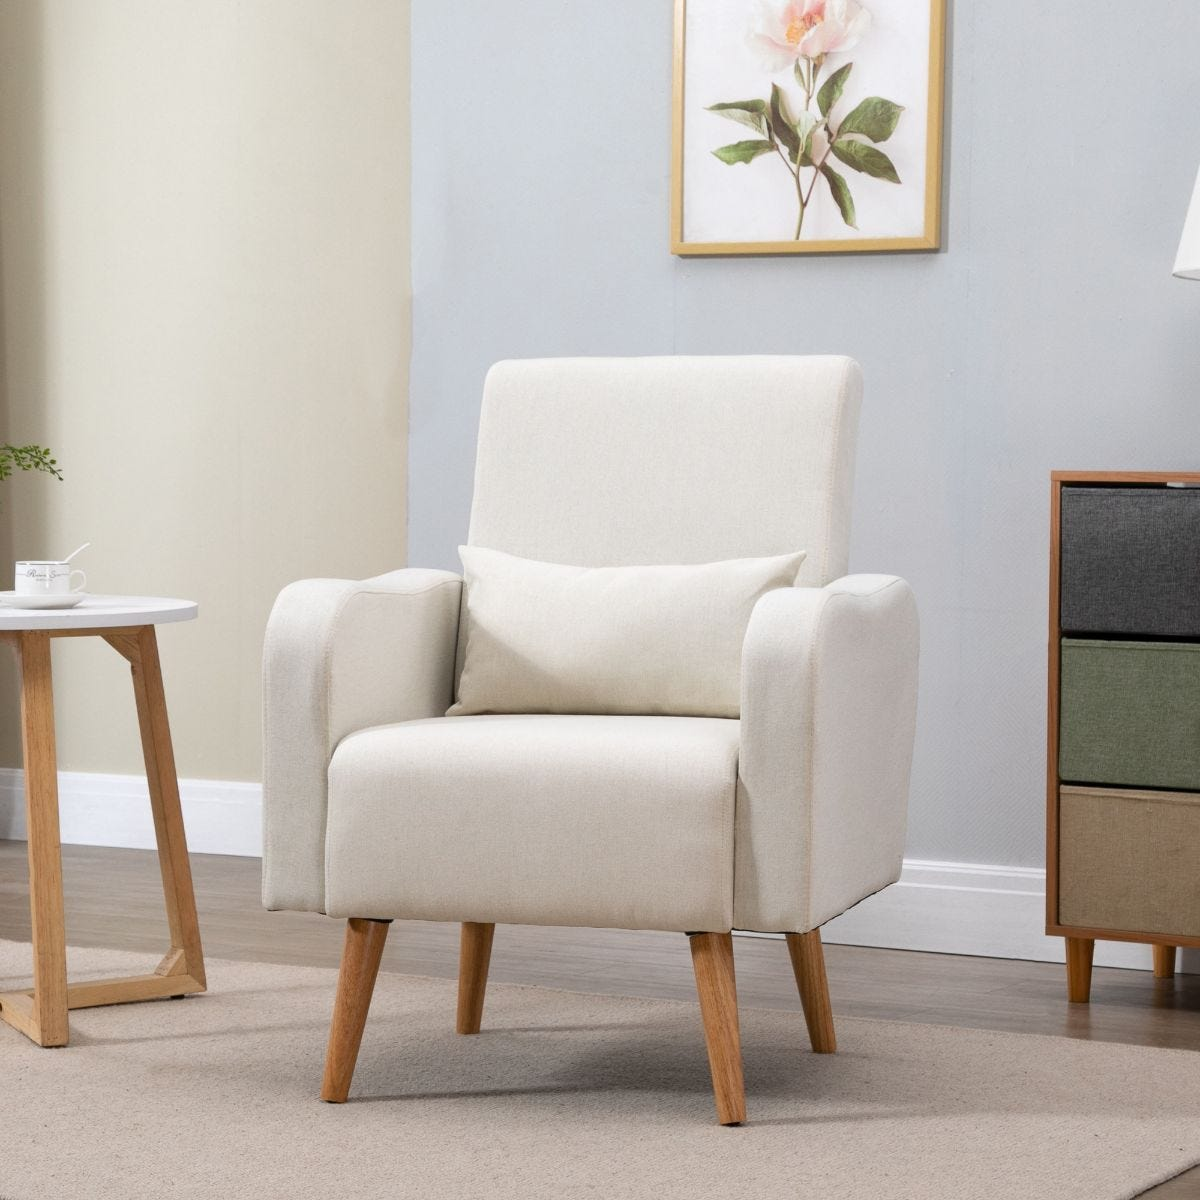 Minimalist Armchair Solid Wood Frame And Legs Faux Linen Cream